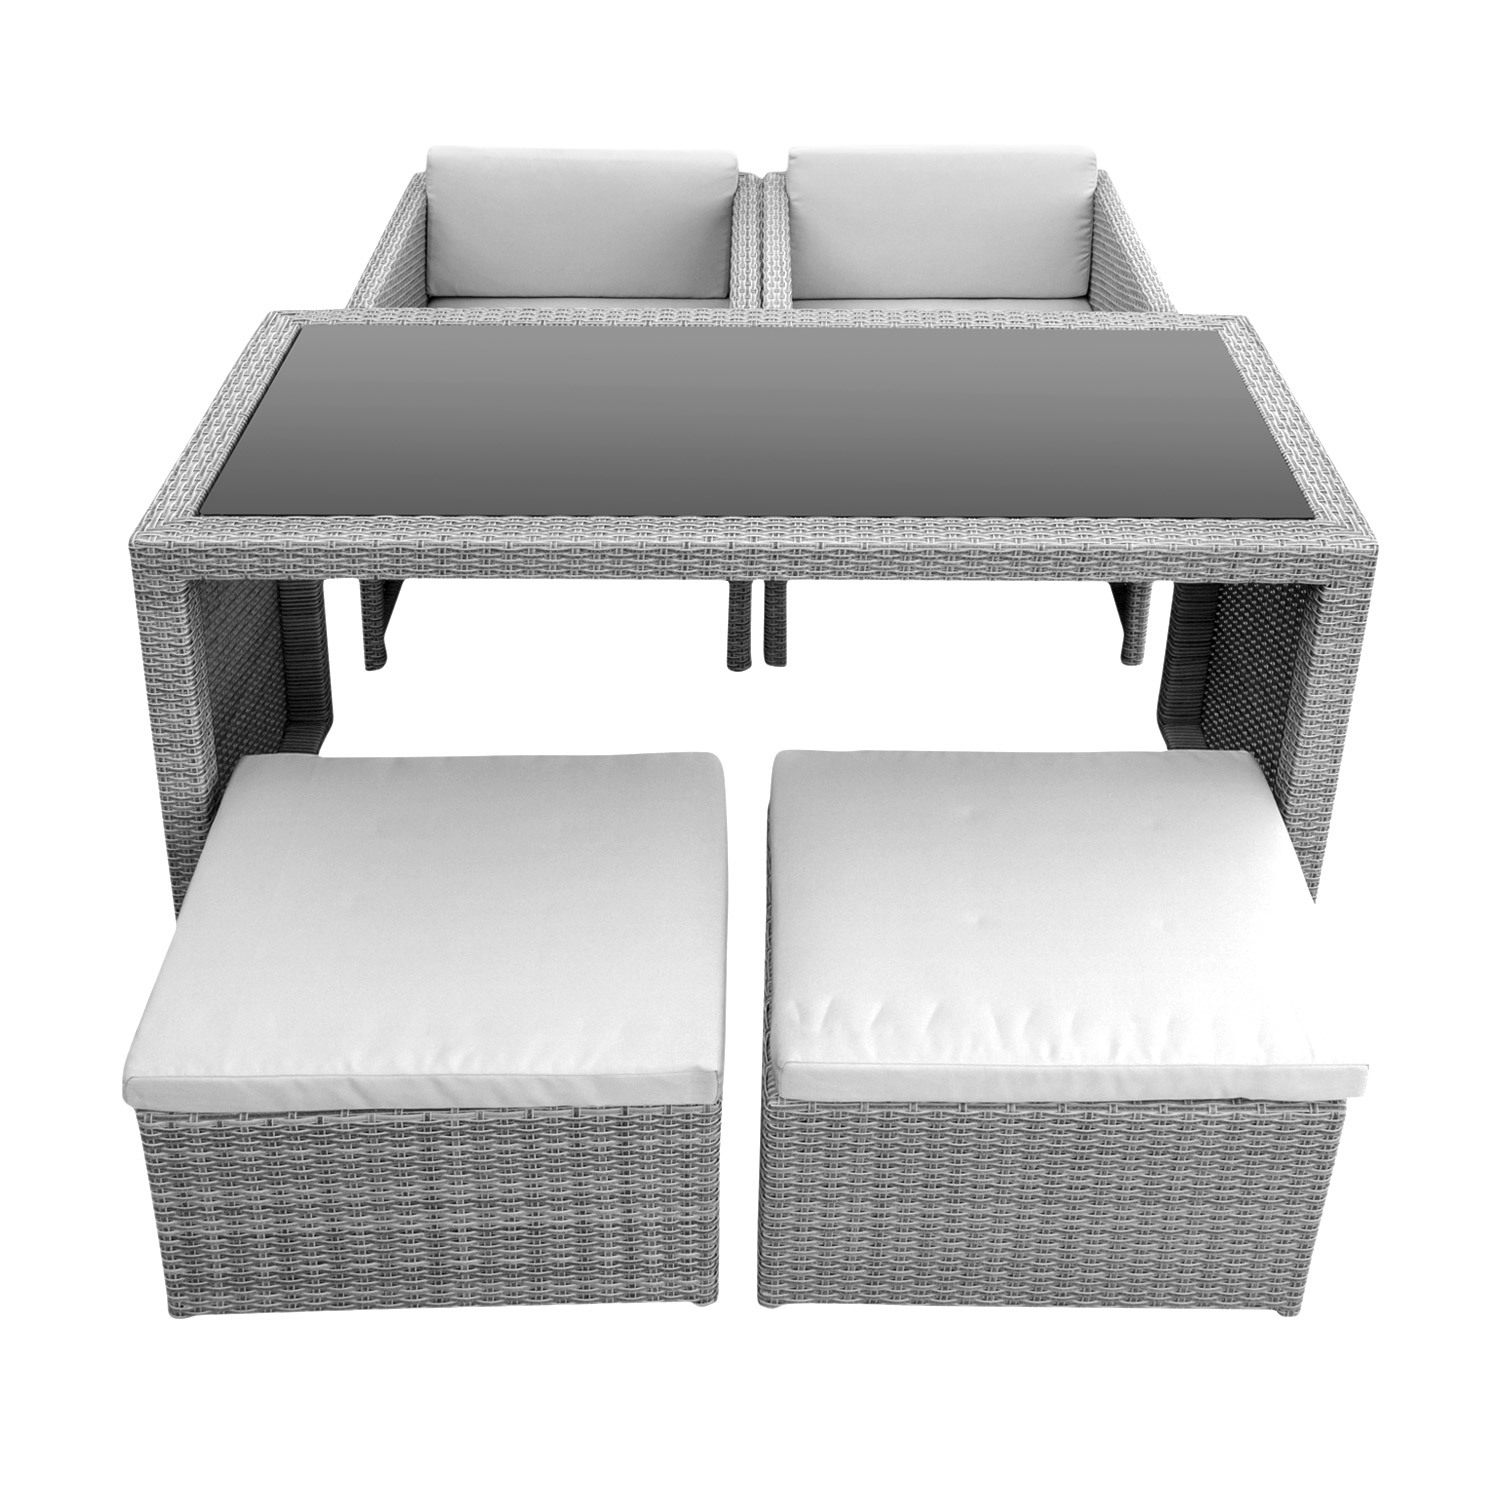 anndora bethari polyrattan gartenm bel hocker sessel tisch kissen grau ebay. Black Bedroom Furniture Sets. Home Design Ideas